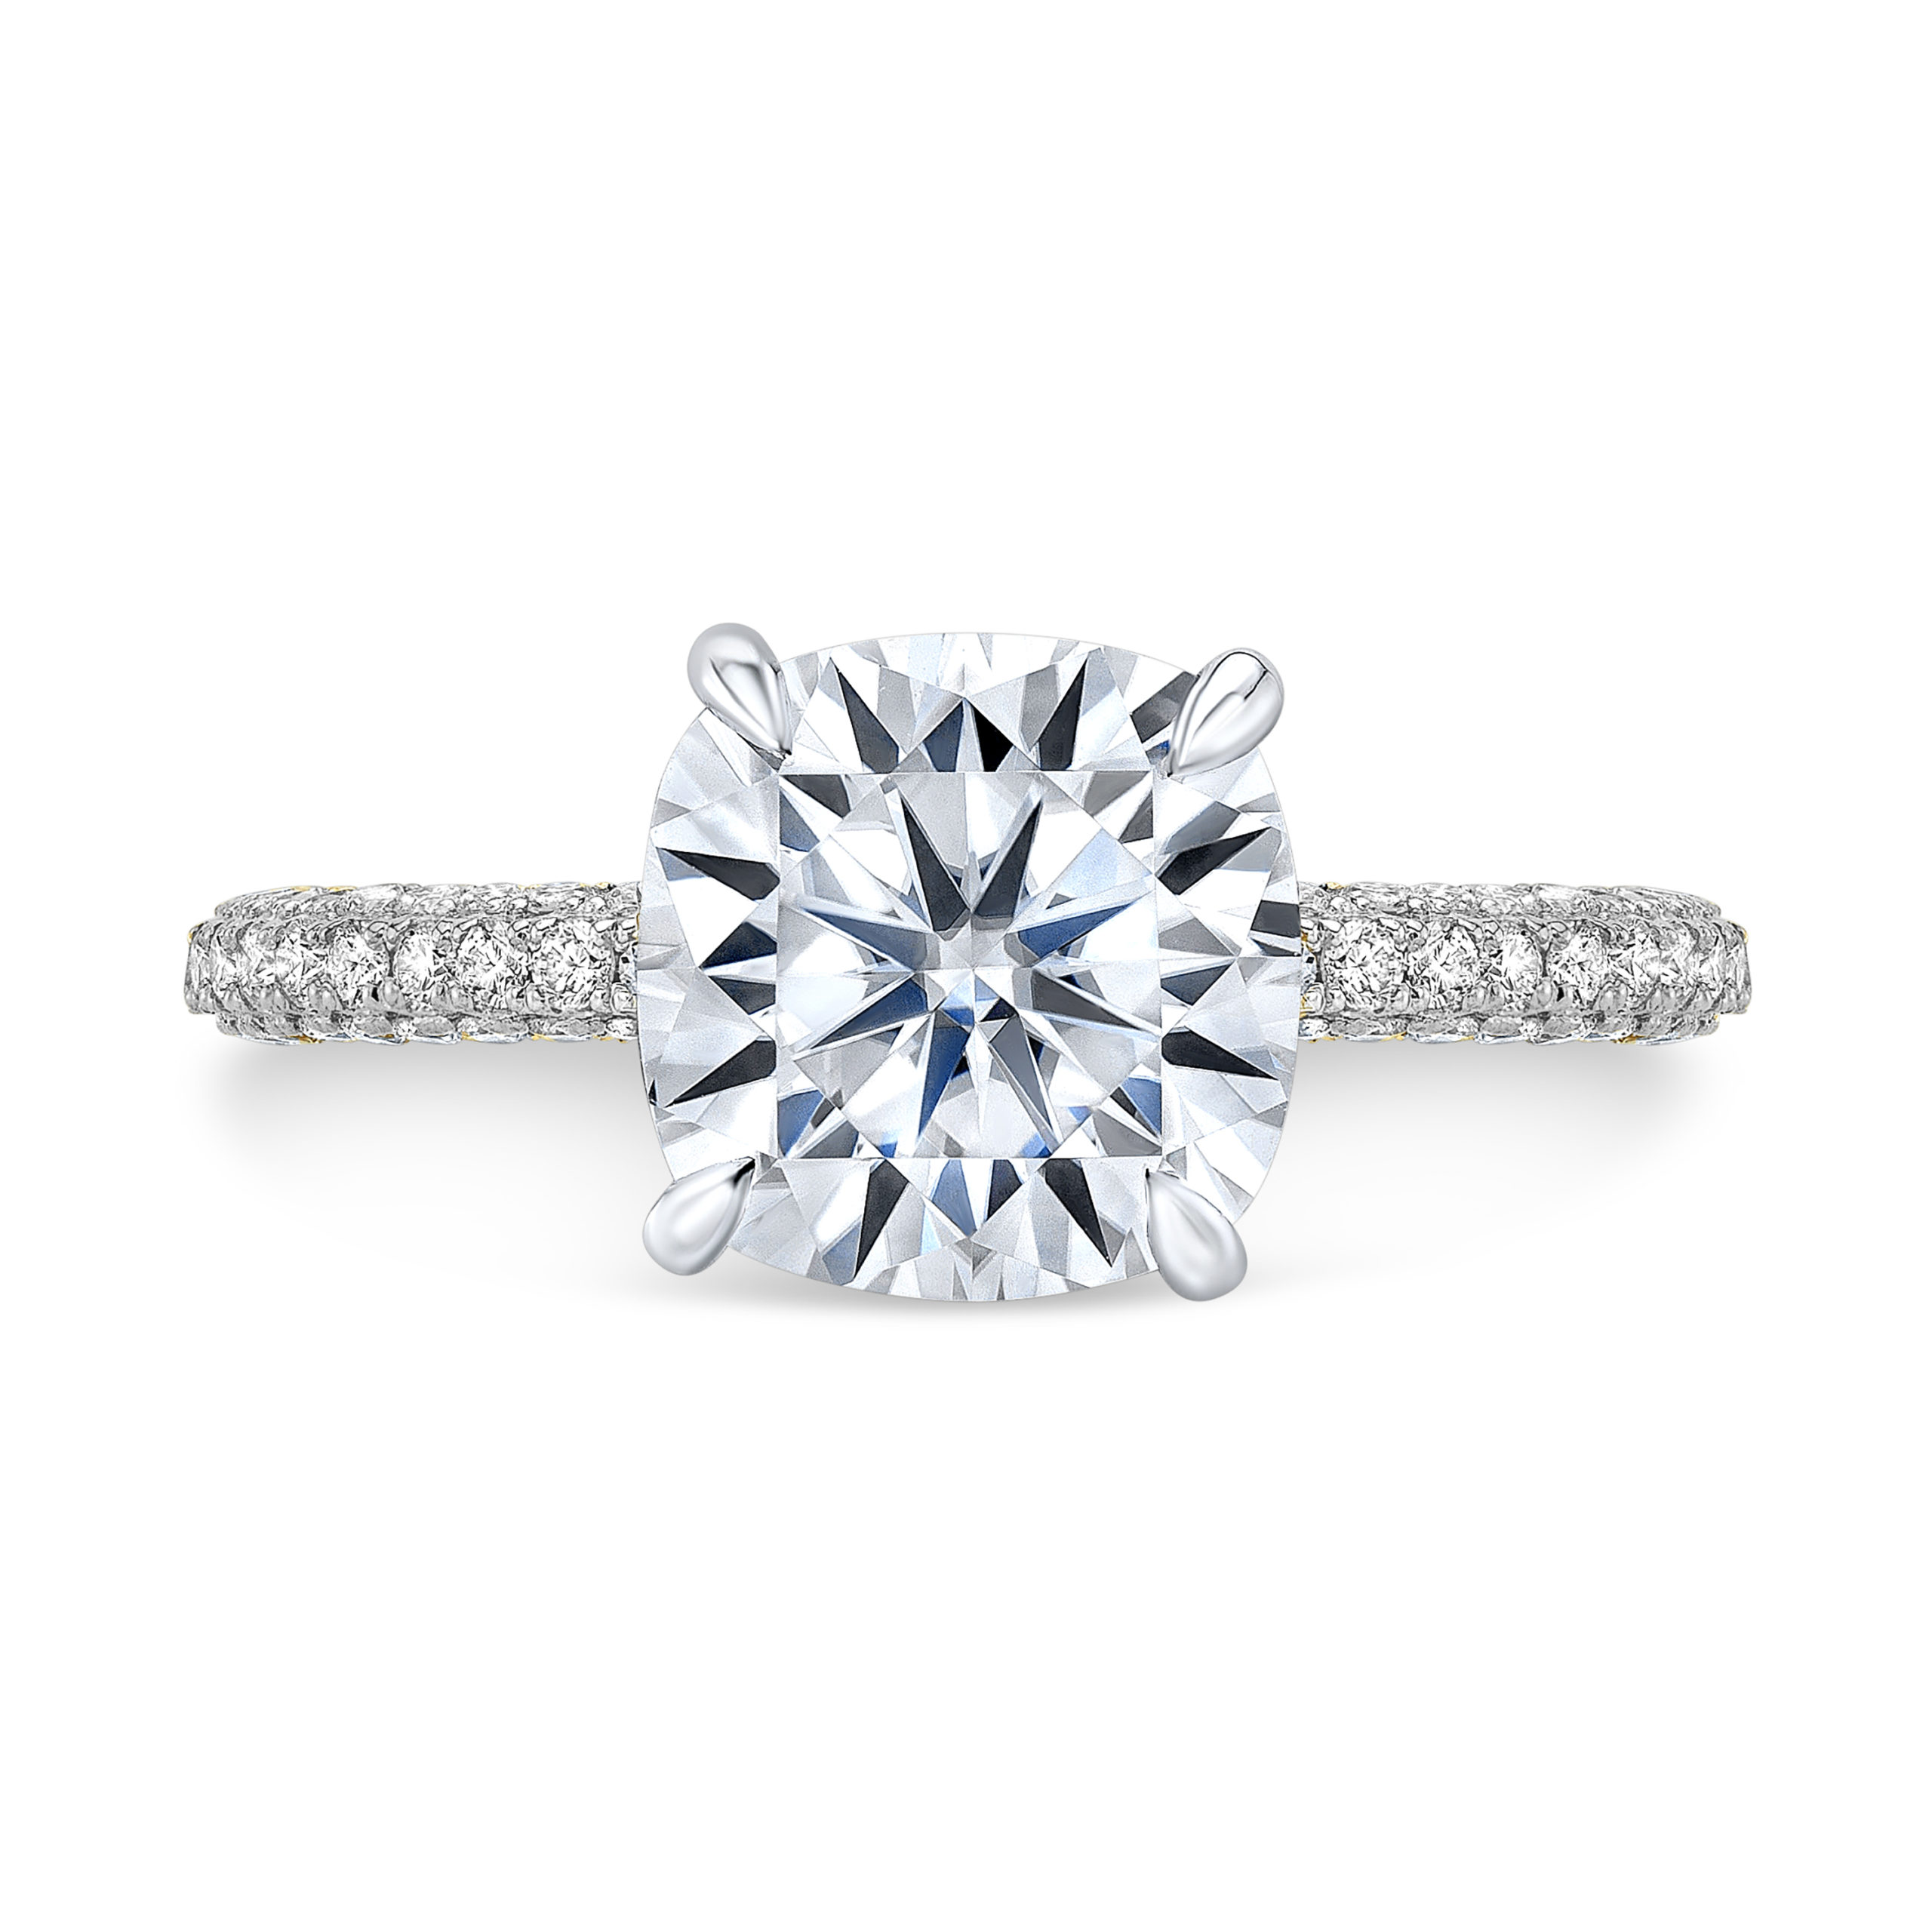 The Iris Moissanite